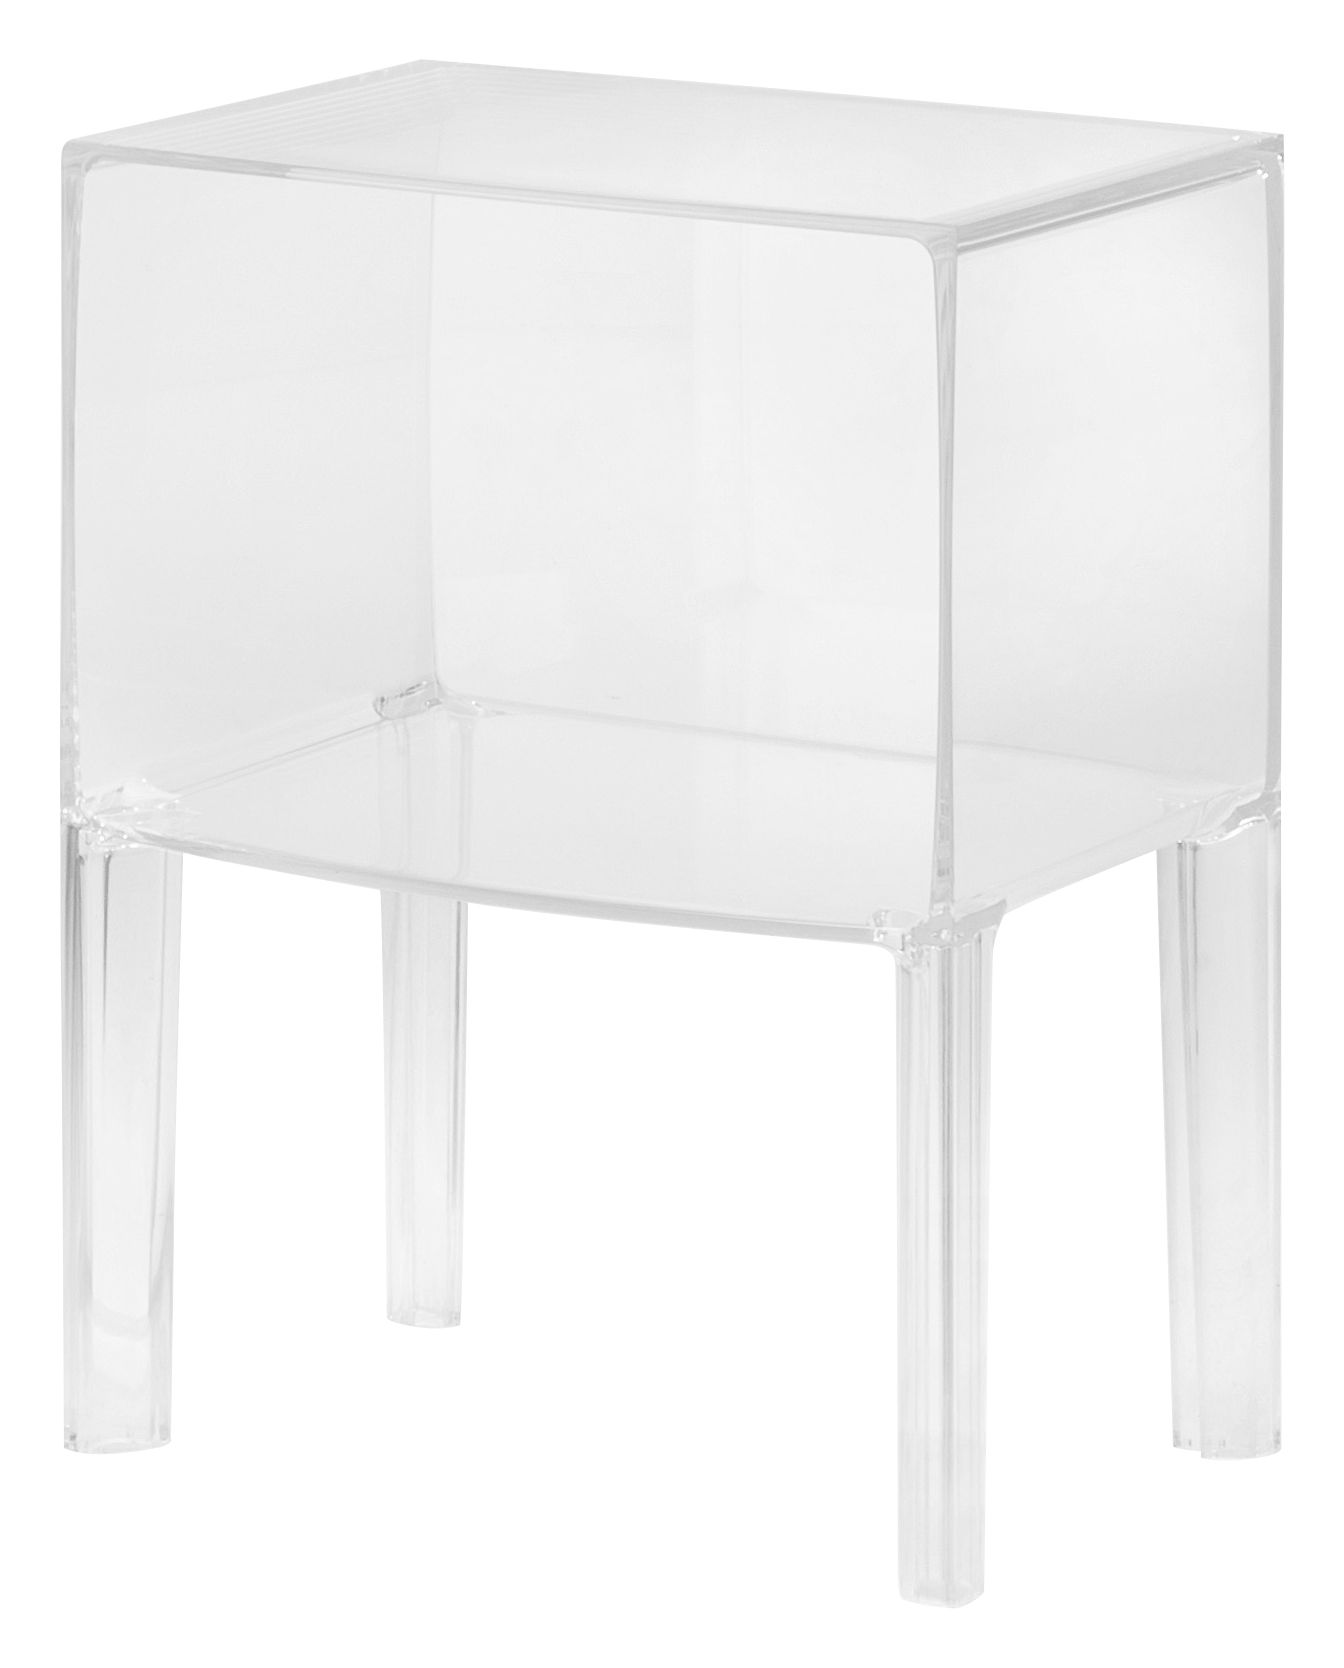 Mobilier - Tables de chevet - Table de chevet Small Ghost Buster - Kartell - Cristal - PMMA